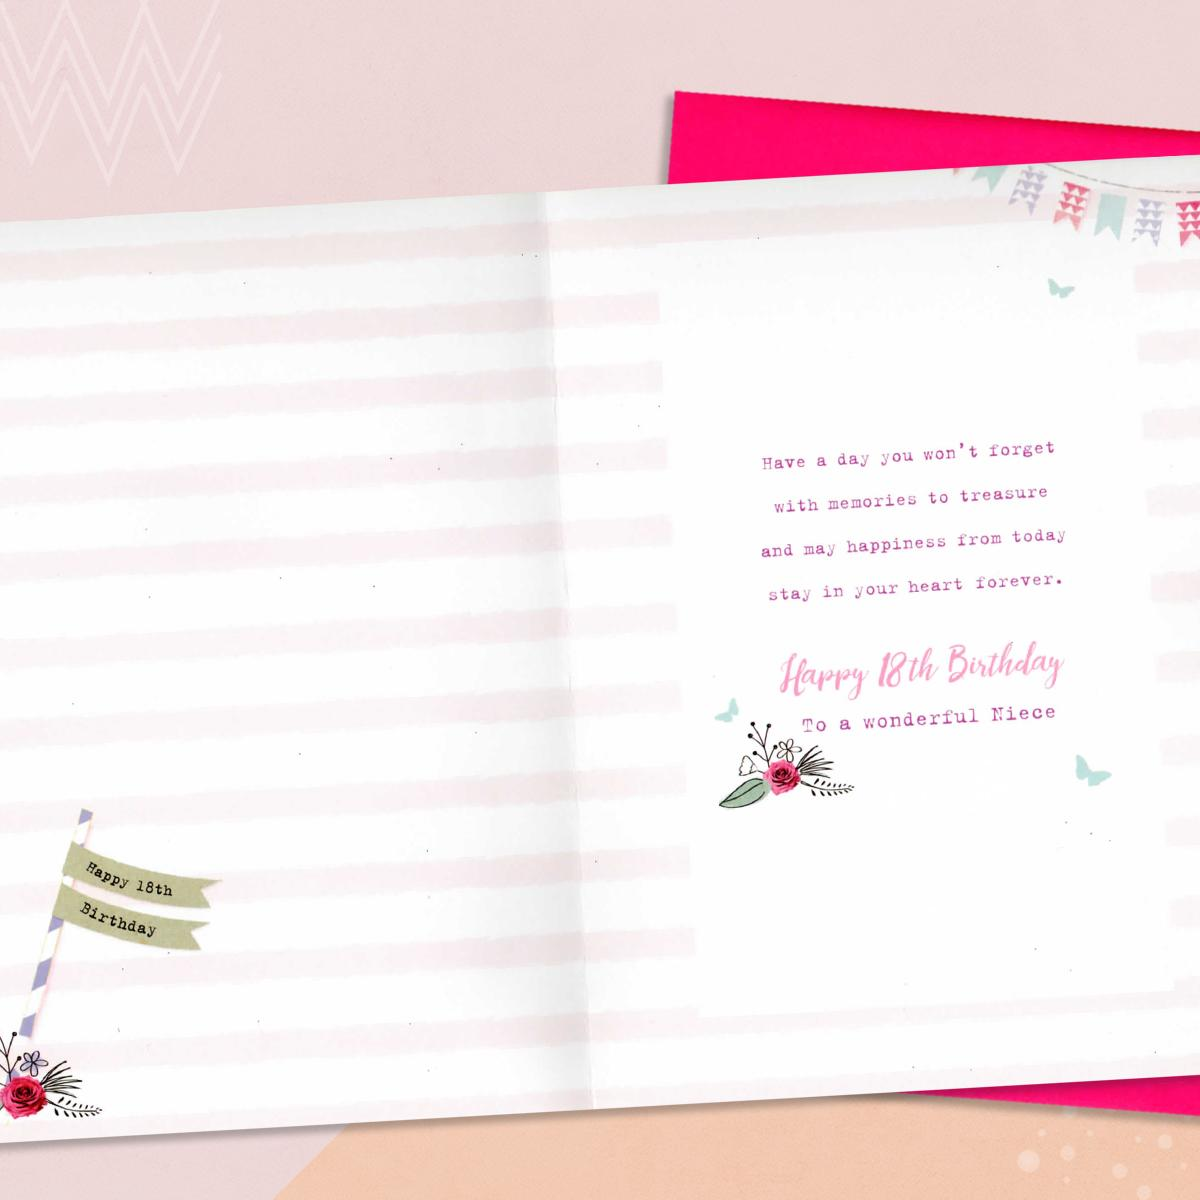 Inside Image Of 18th Niece Birthday Card To Show Layout